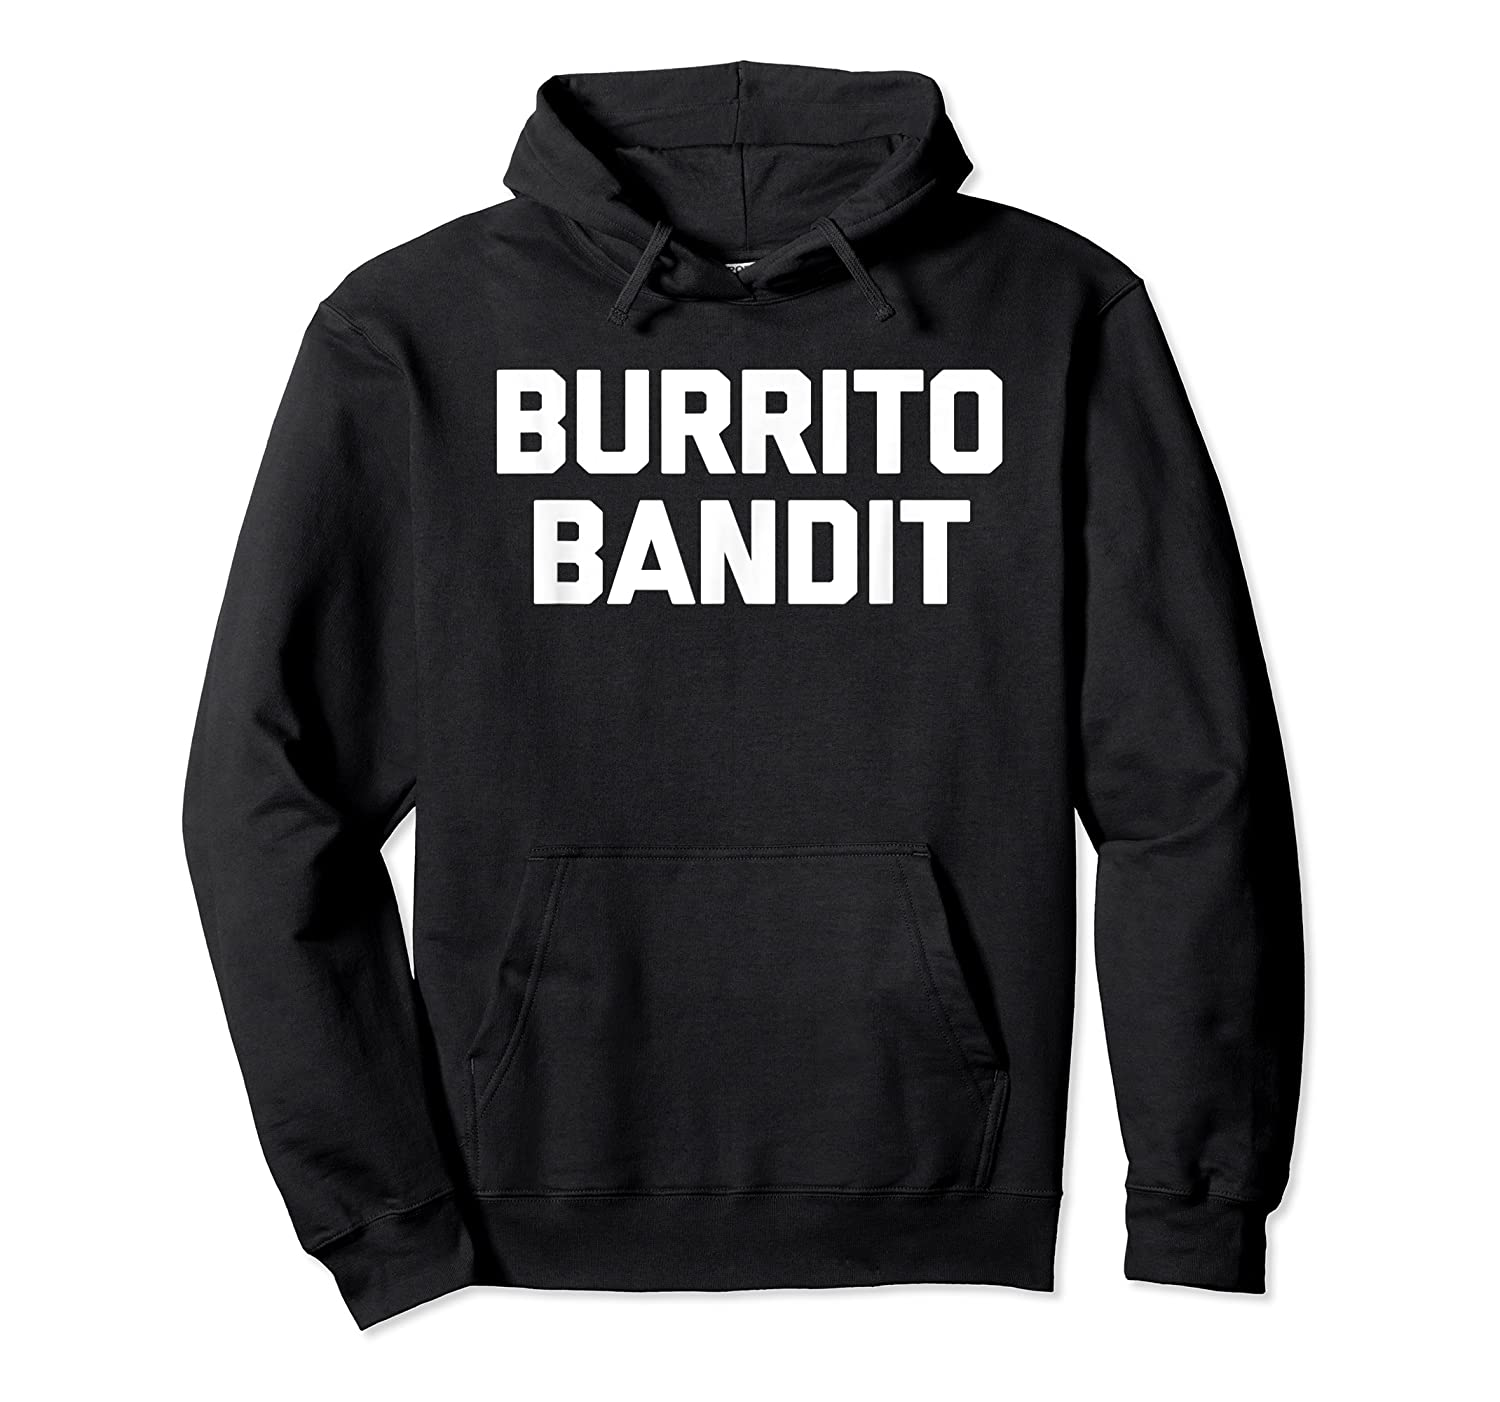 Burrito Bandit T Shirt Funny Saying Sarcastic Novelty Humor Unisex Pullover Hoodie